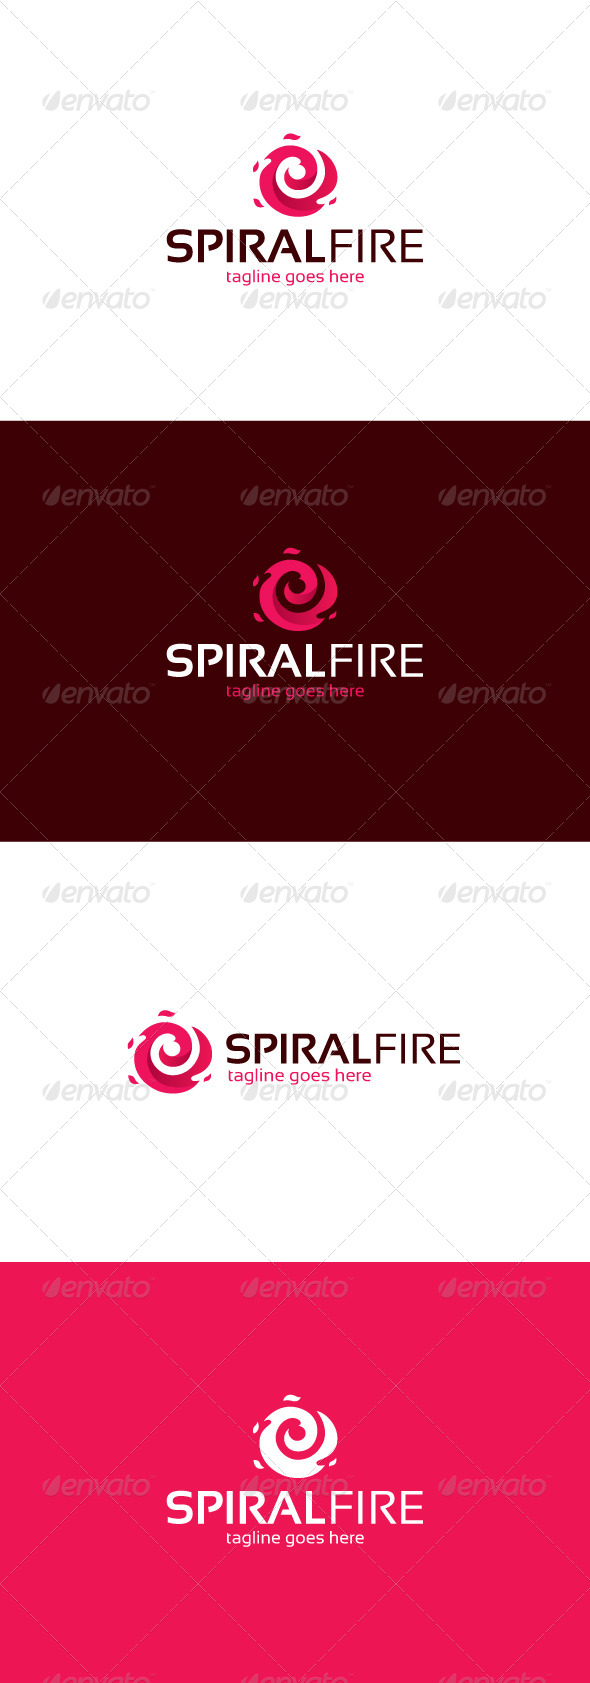 GraphicRiver Spiral Fire Logo 8246305